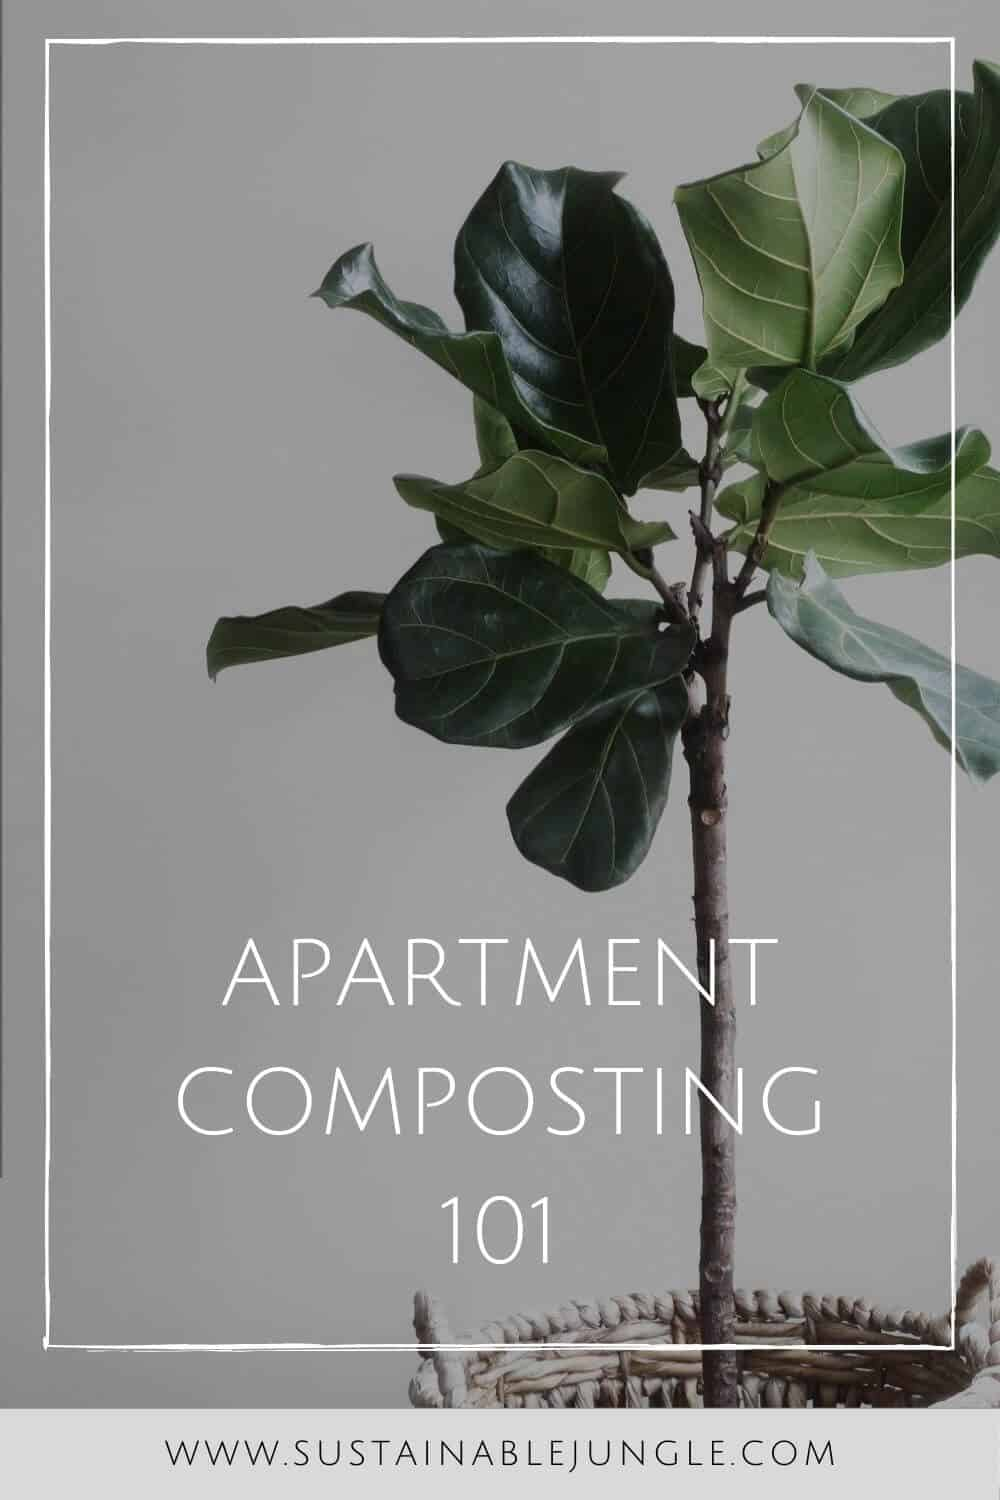 Living in a small apartment doesn't mean you can't do your part. Learn how to compost in an apartment with our apartment composting guide... Photo by Lauren Mancke on Unsplash #apartmentcomposting #sustainablejungle